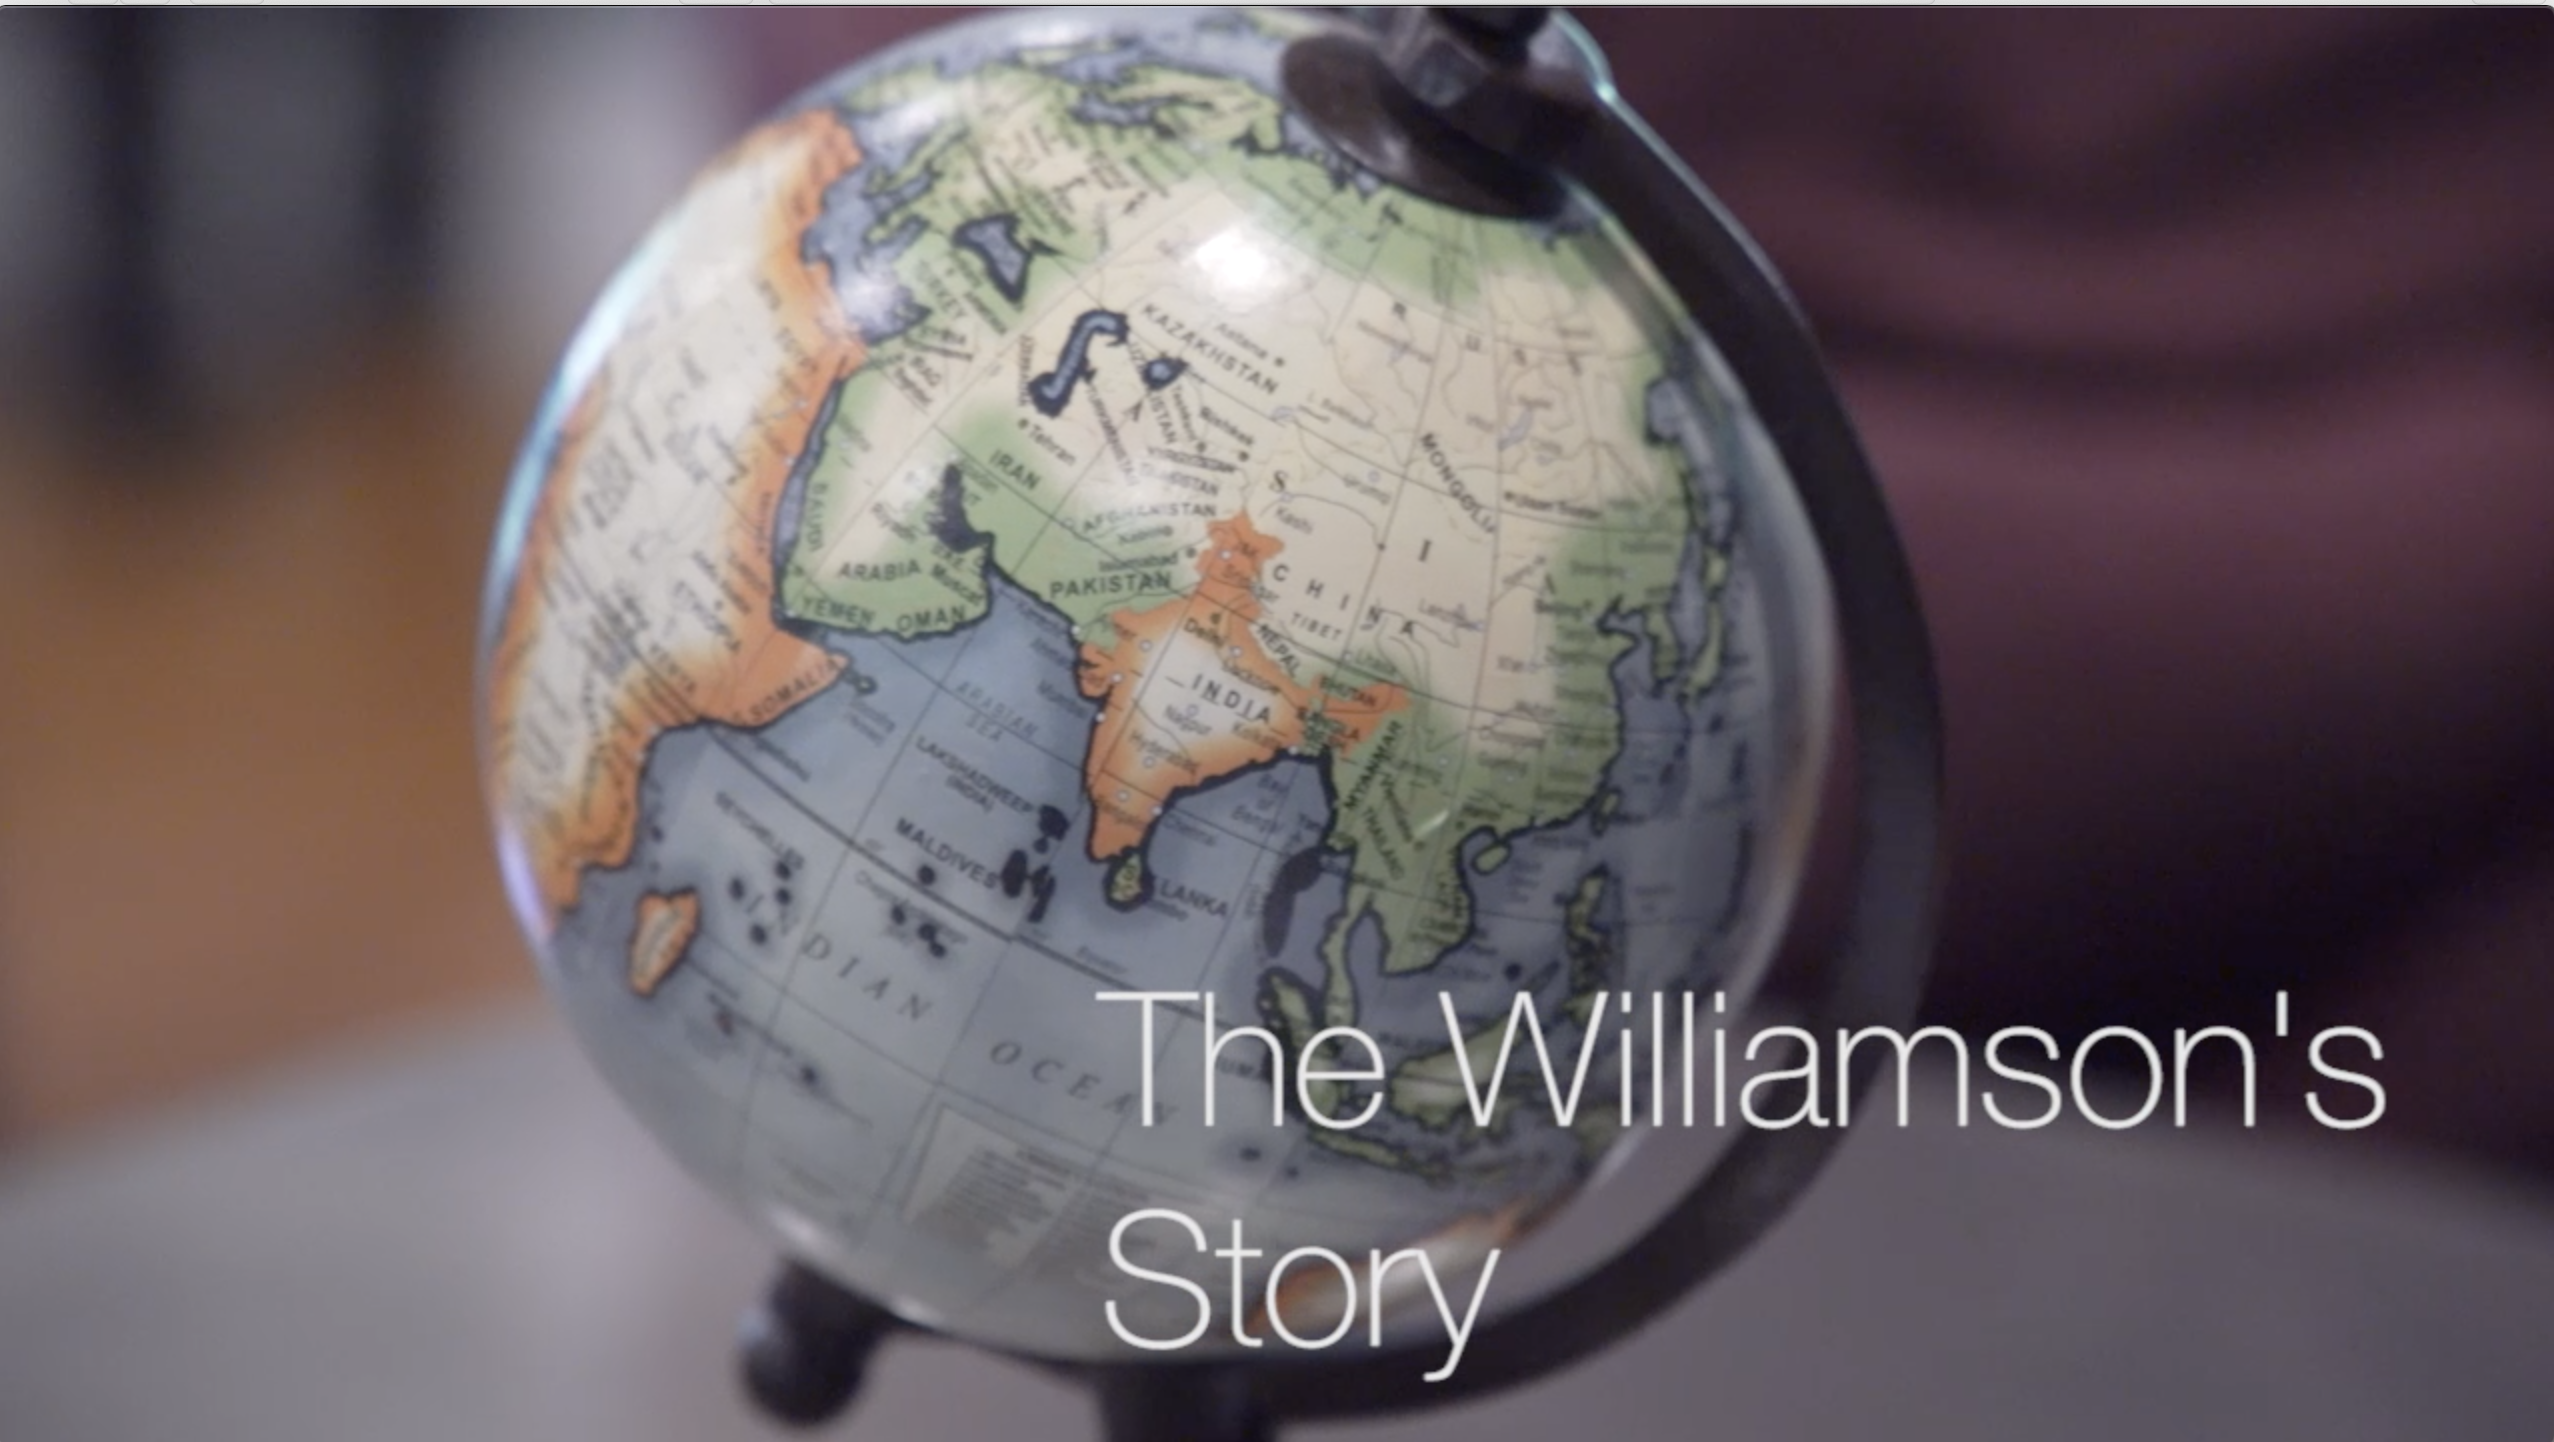 The Williamson's Story